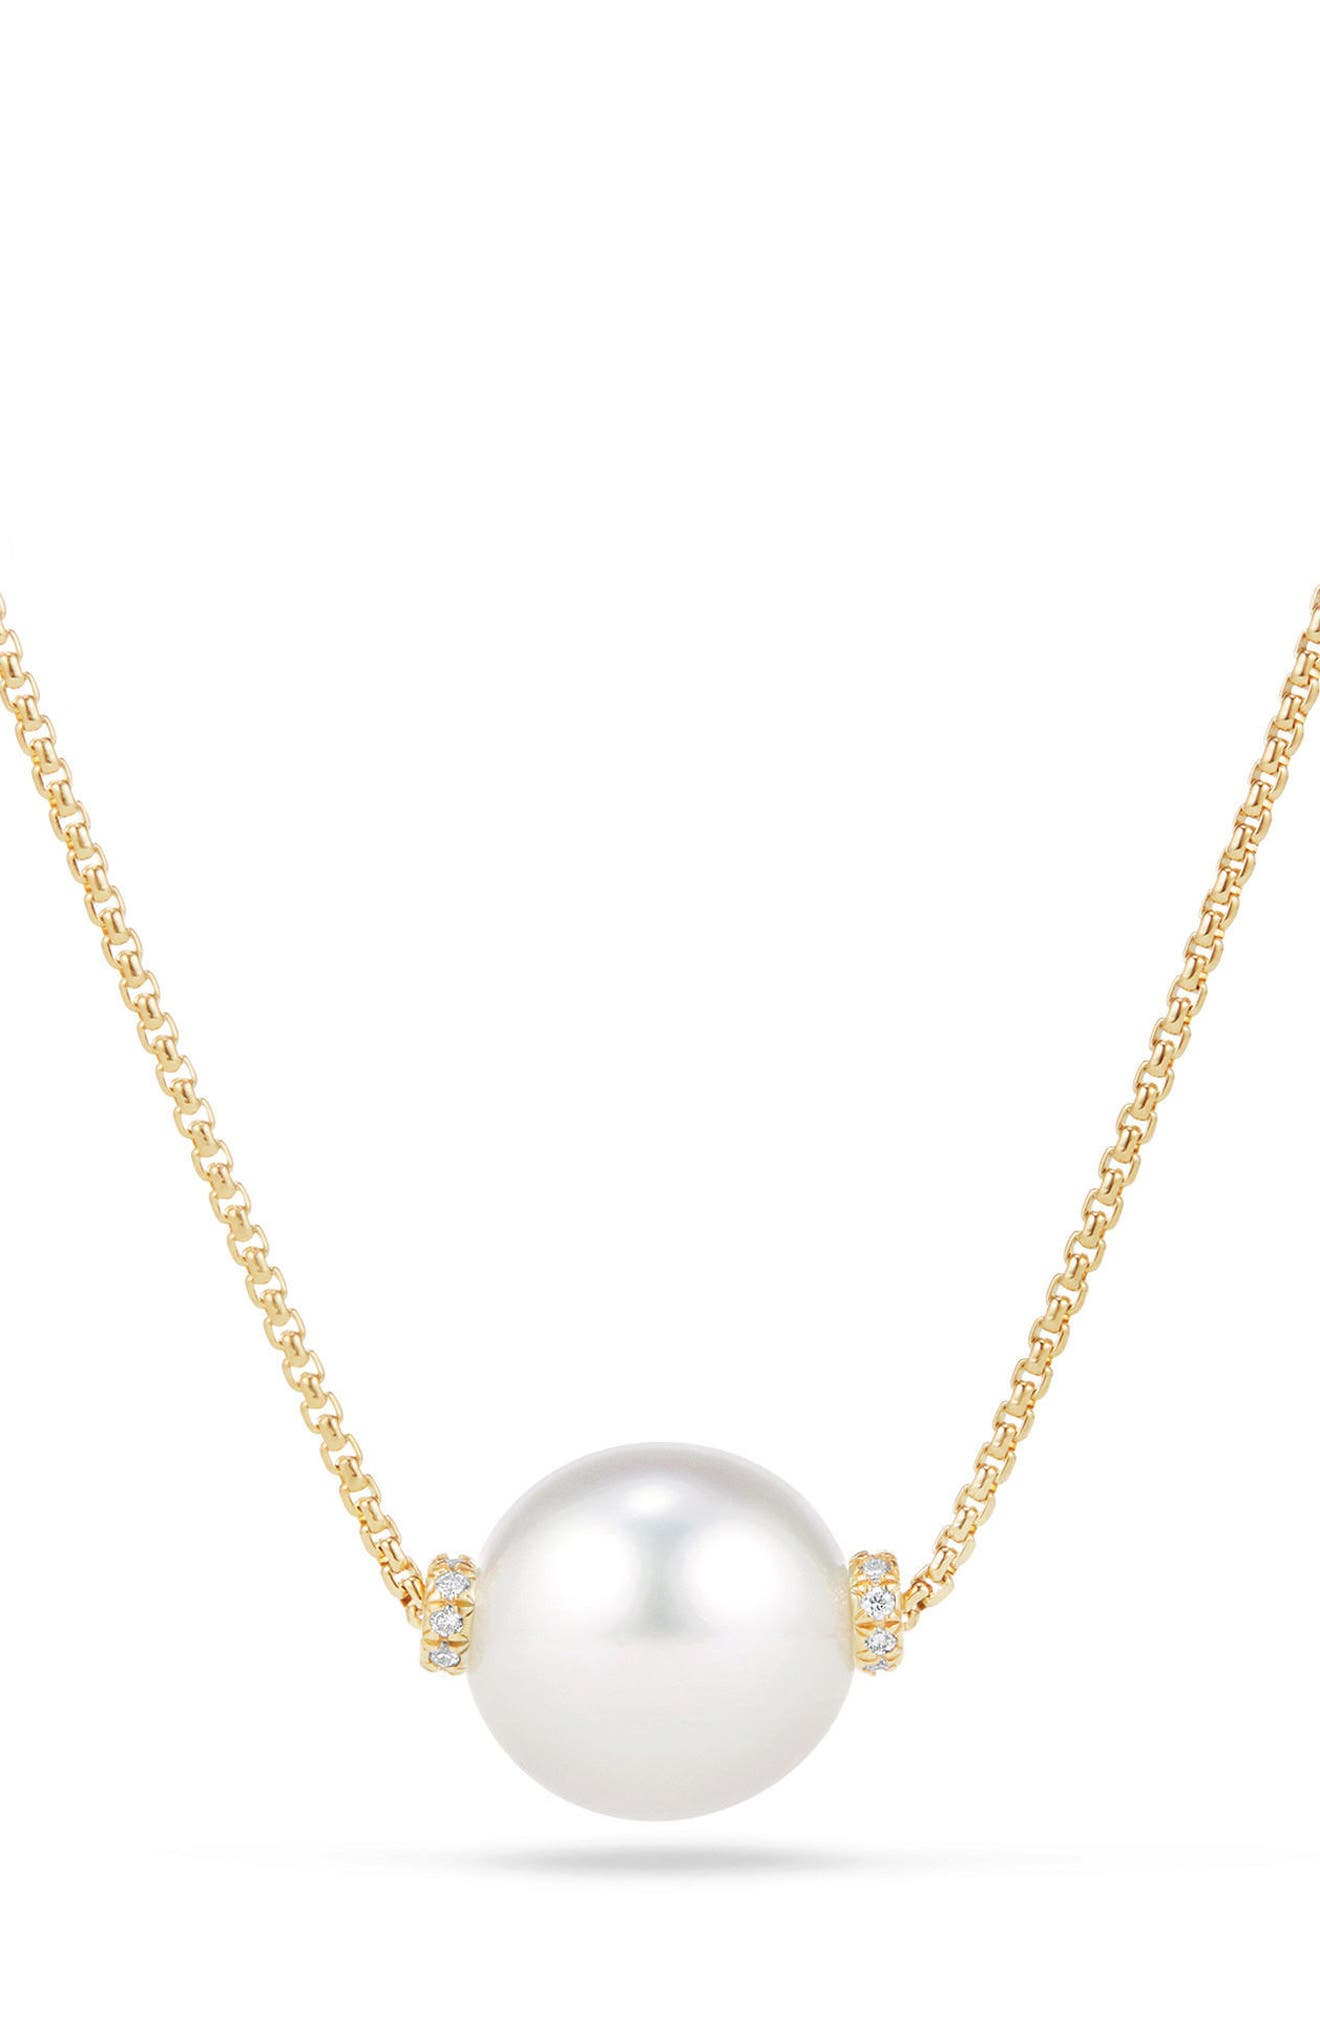 Solari Pearl Station Necklace,                         Main,                         color, YELLOW GOLD/ SOUTH SEA WHITE